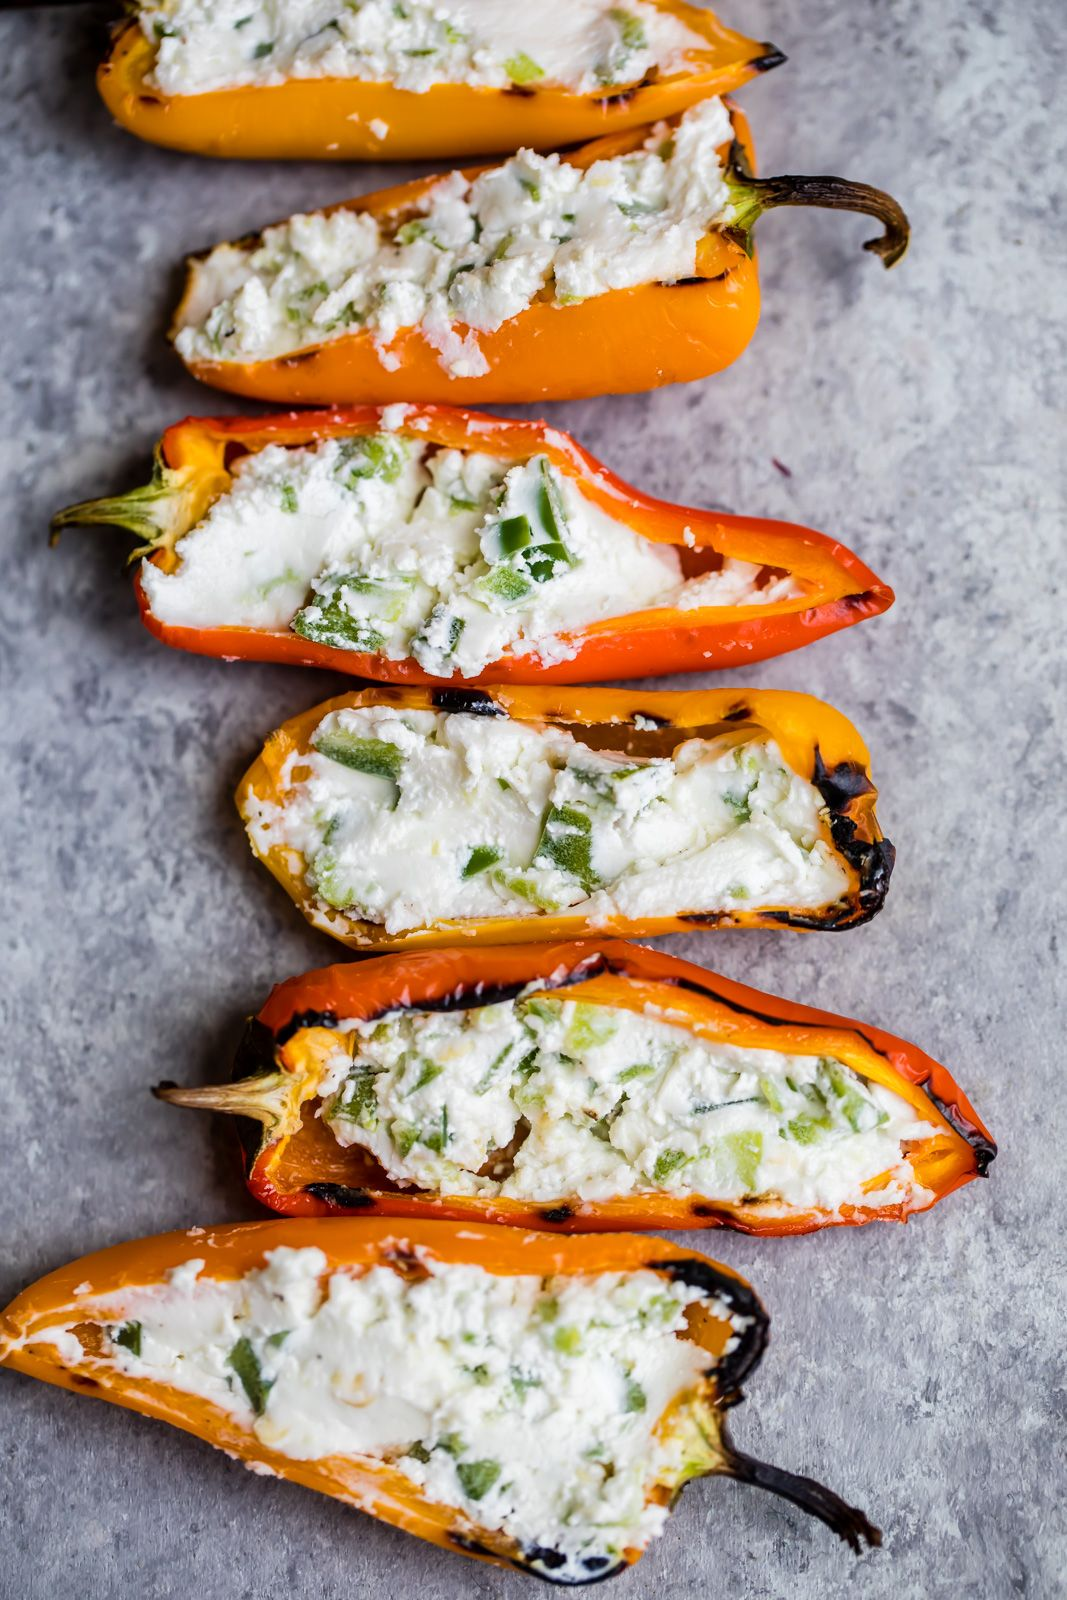 Grilled Stuffed Mini Peppers That Are Both Easy And Delicious This Vegetarian Appetizer Is In 2020 Stuffed Mini Peppers Vegetarian Appetizers Vegetarian Recipes Easy